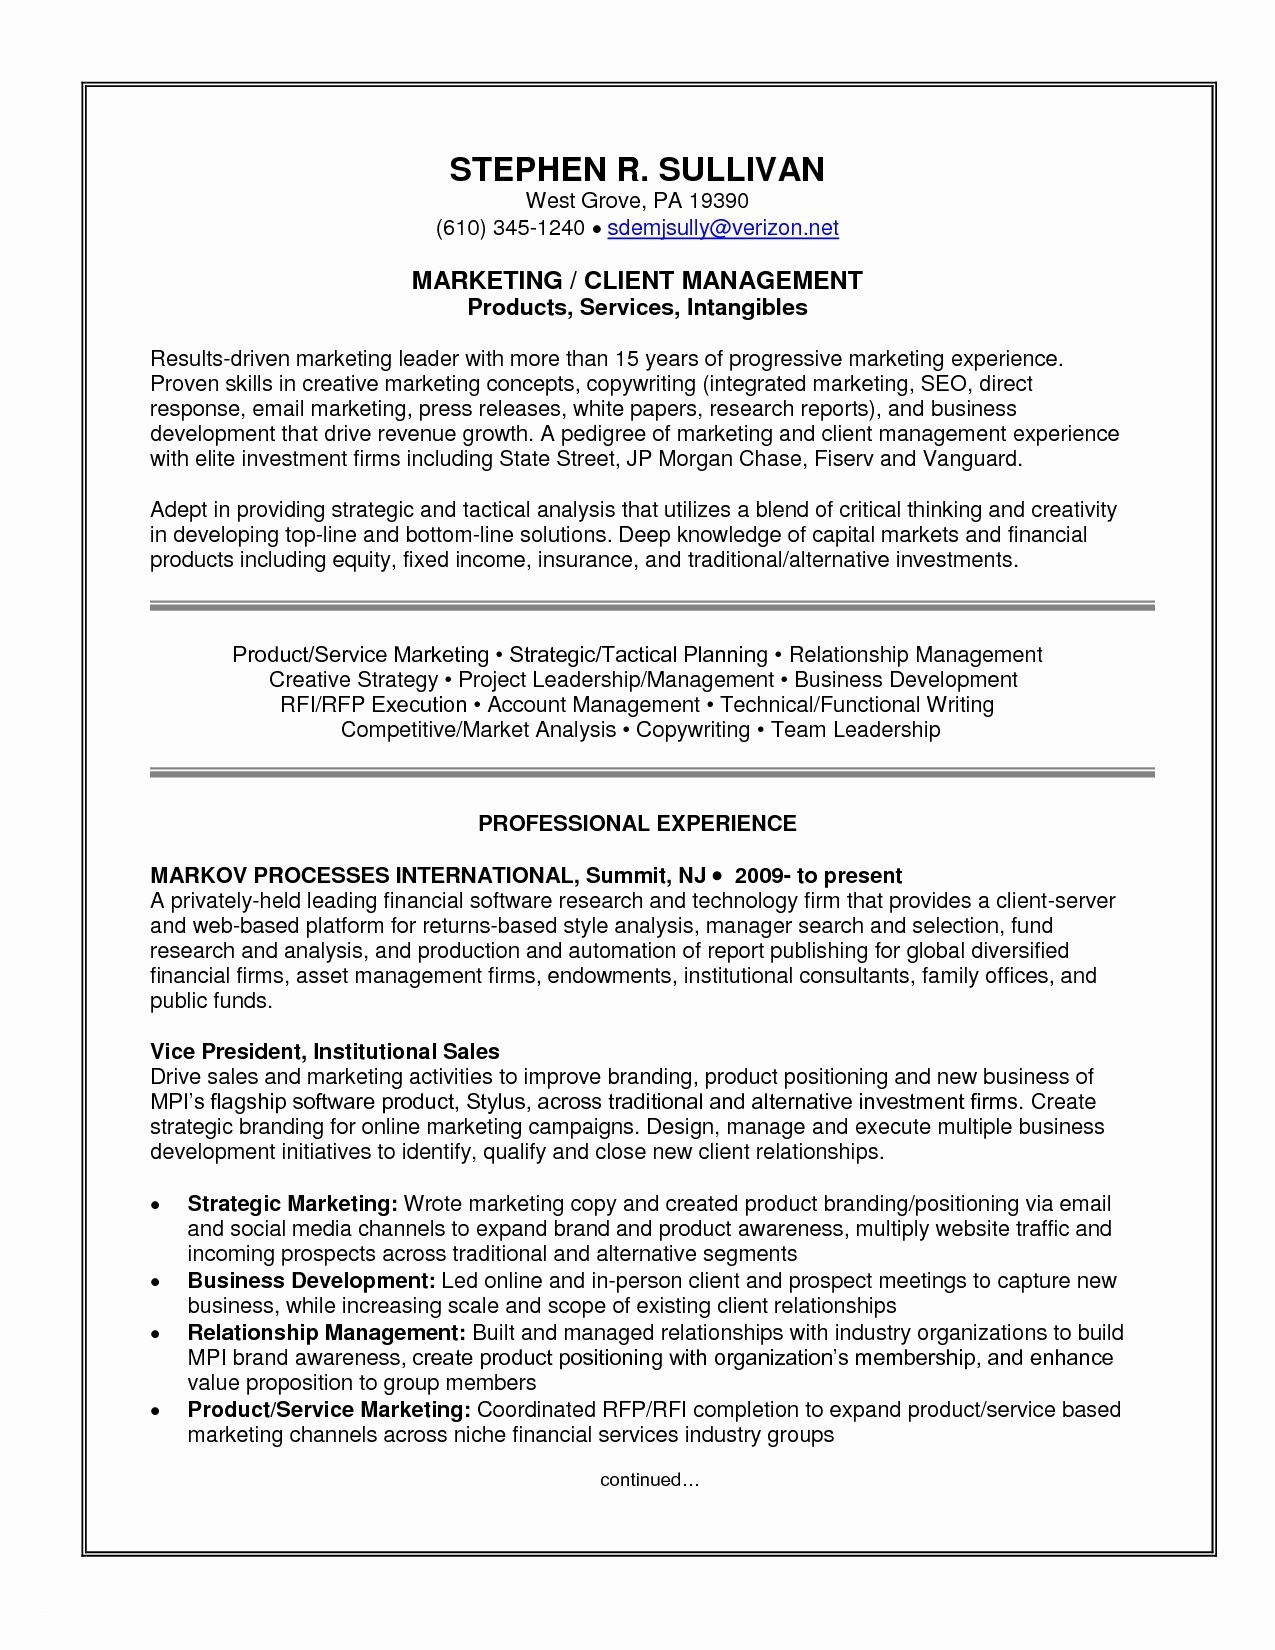 Health Care Business Analyst Resume - Change Career Objective Examples for Resumes Best Business